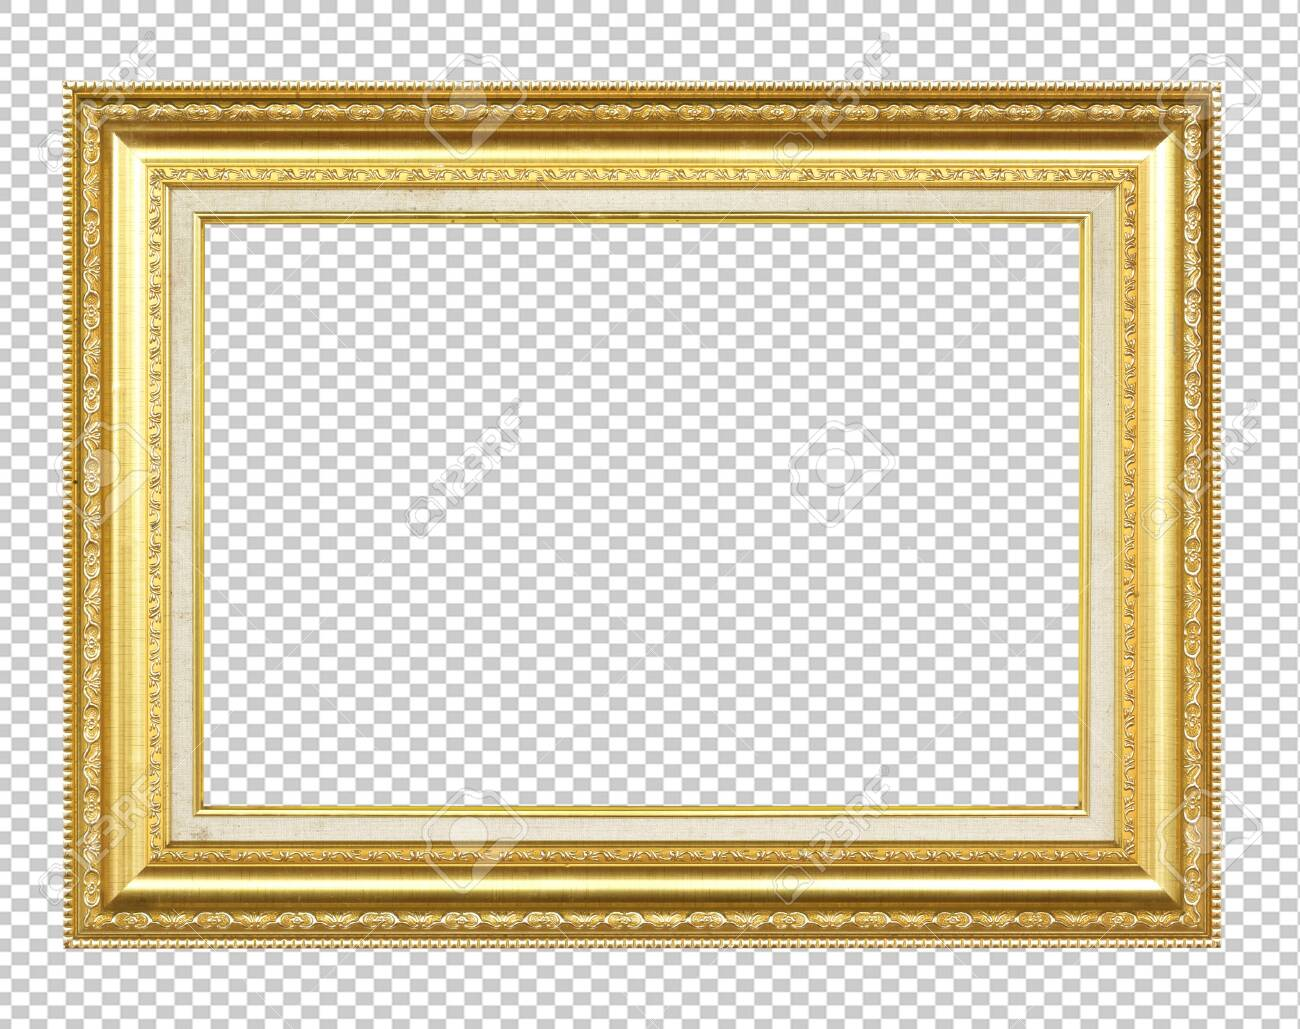 Golden wooden frame isolated on transparent background - 124388039